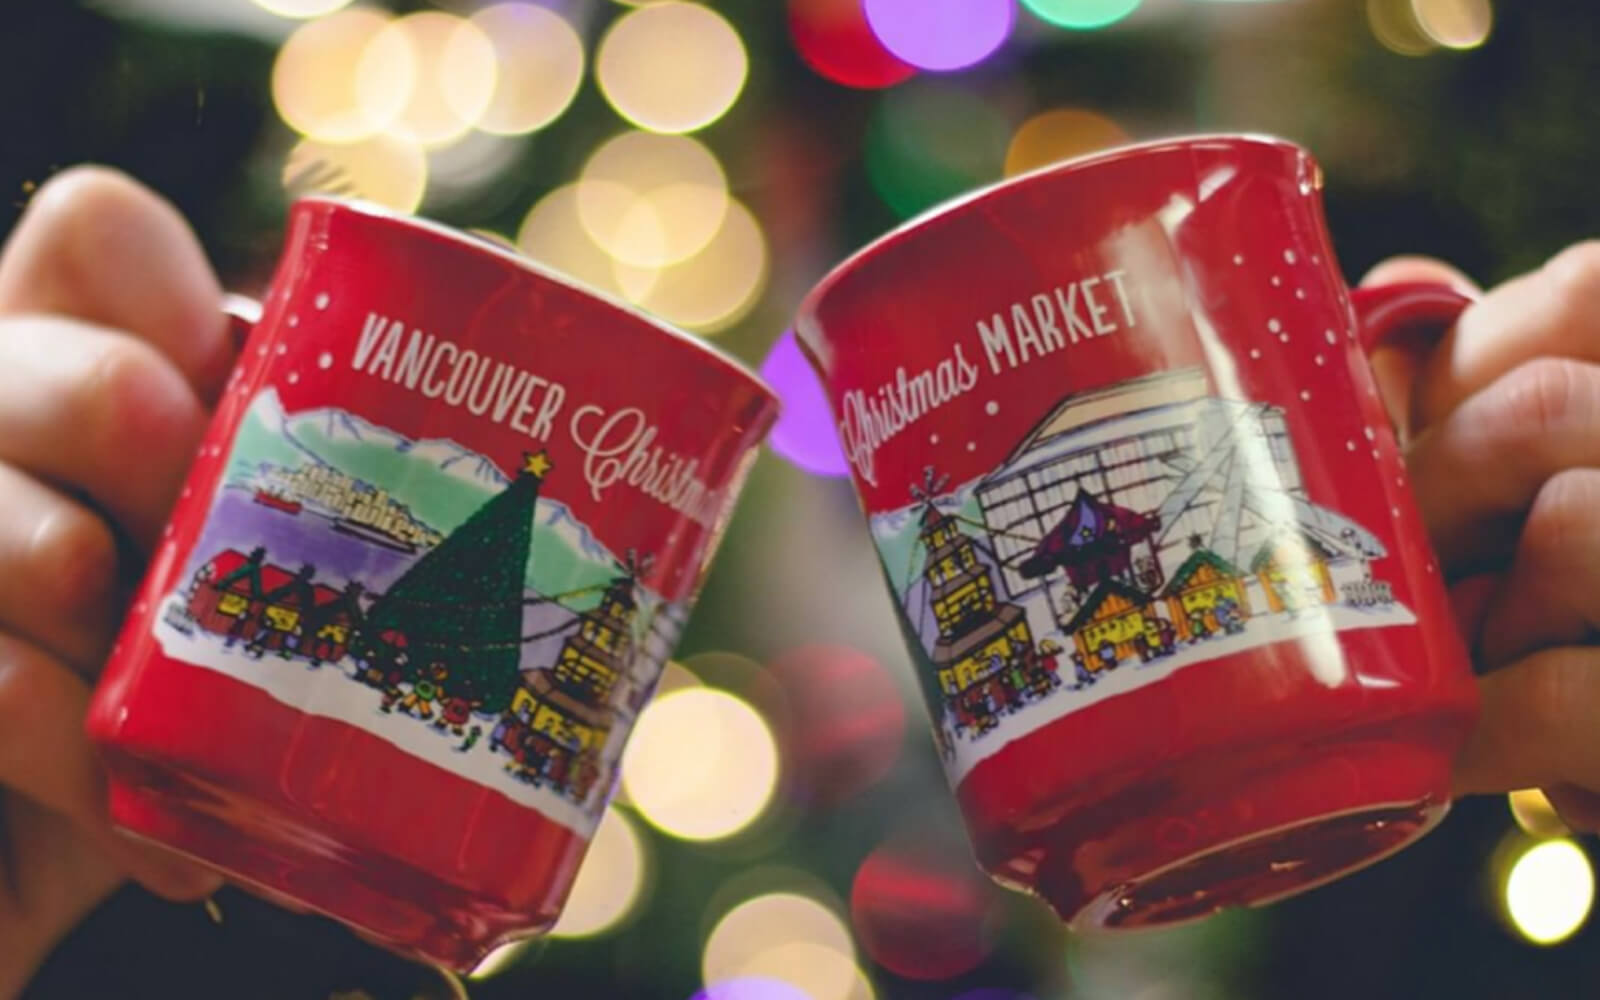 WELCOME TO THE 2019 VANCOUVER CHRISTMAS MARKET